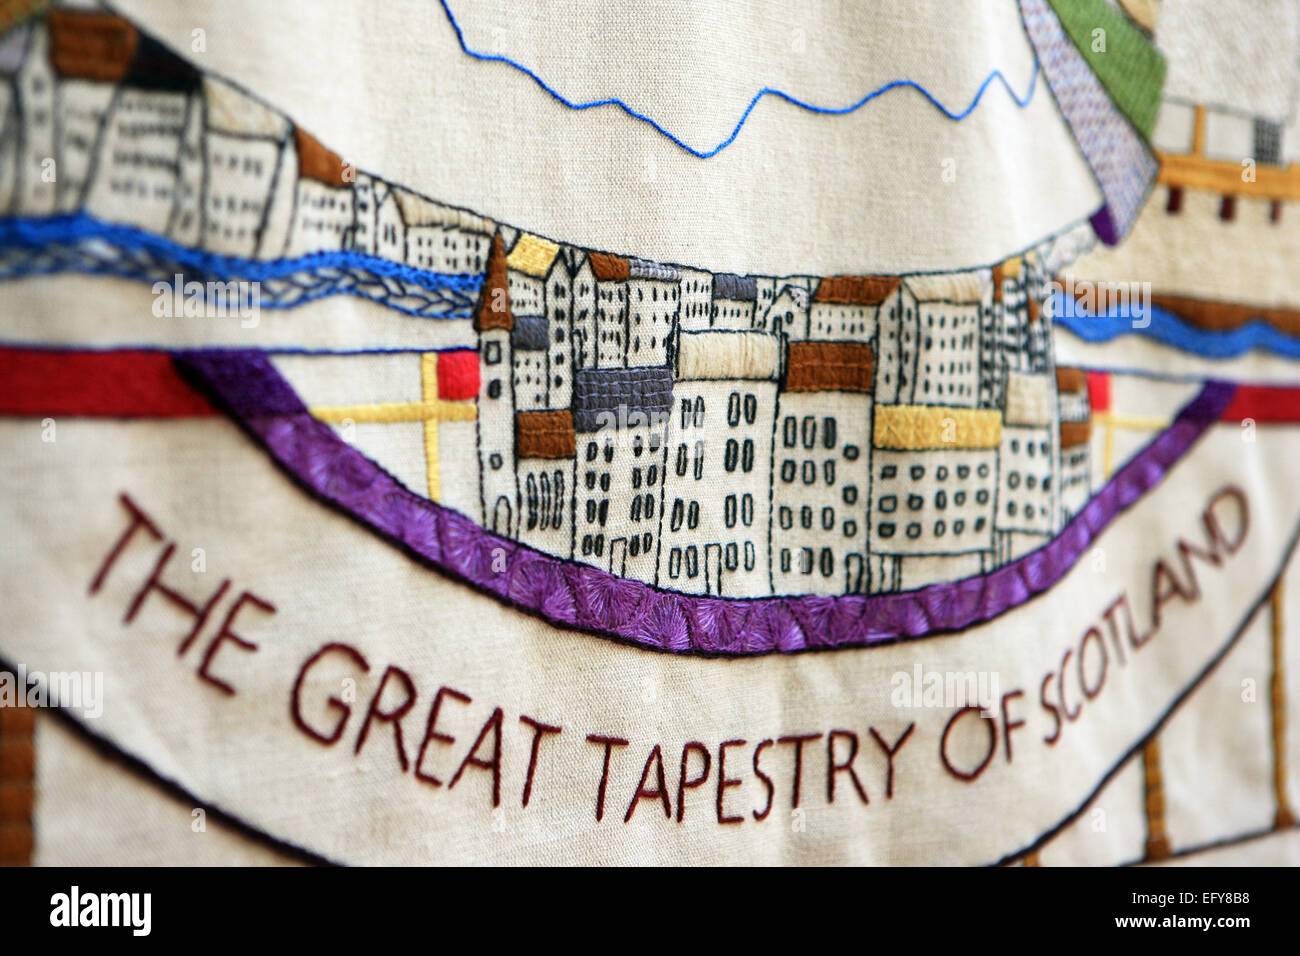 The Great Tapestry of Scotland exhibition which tells the story of Scotland's history from a unique perspective. - Stock Image